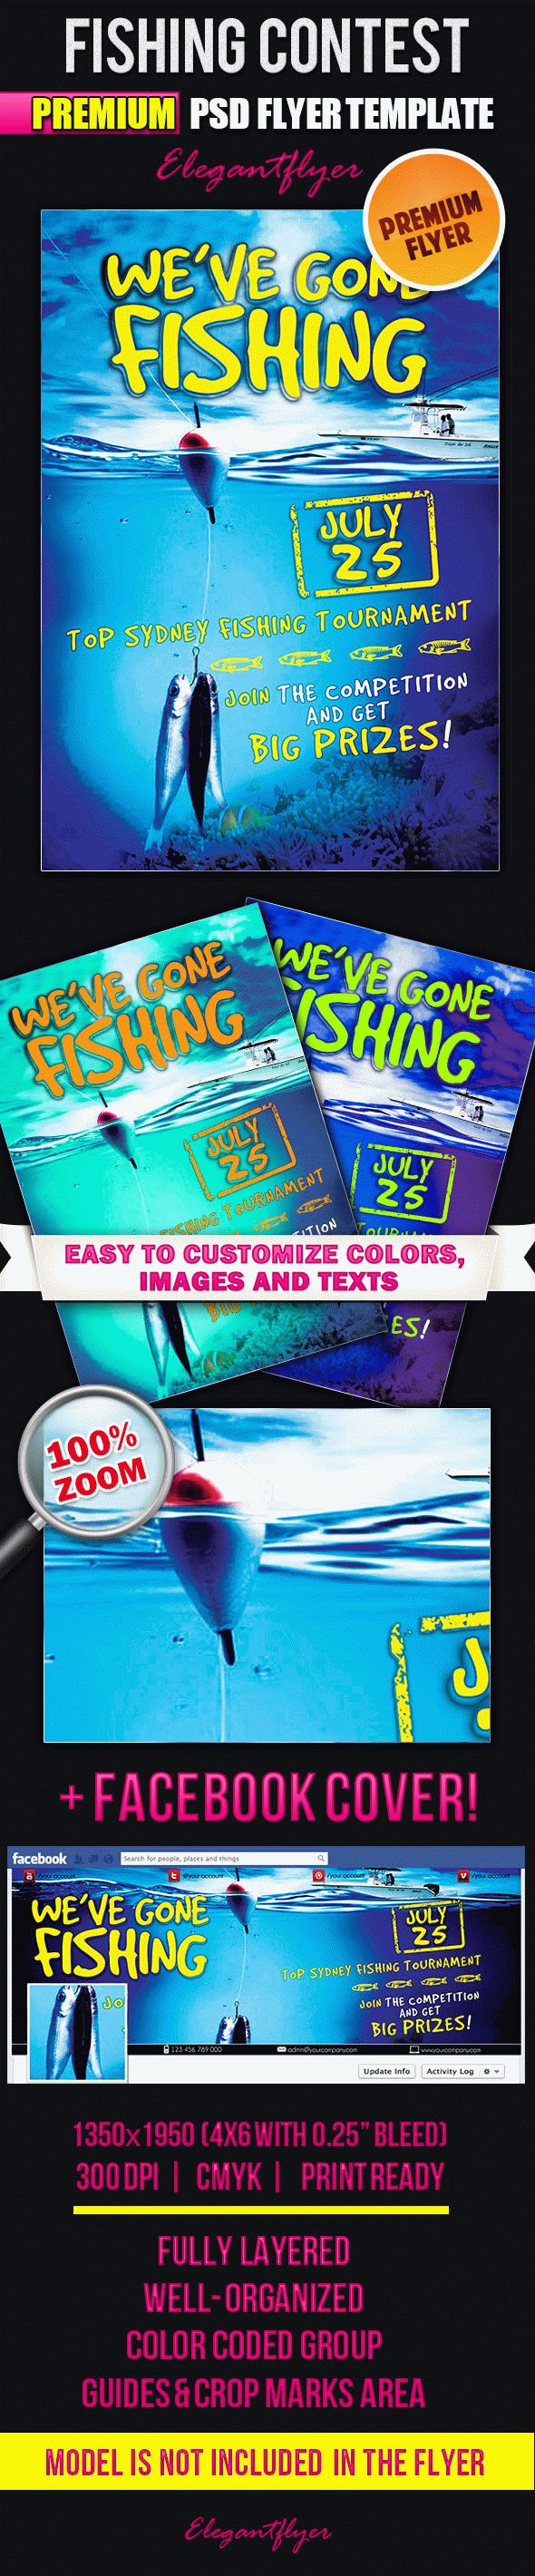 Fishing Contest Flyer PSD Template Facebook Cover by – Competition Flyer Template